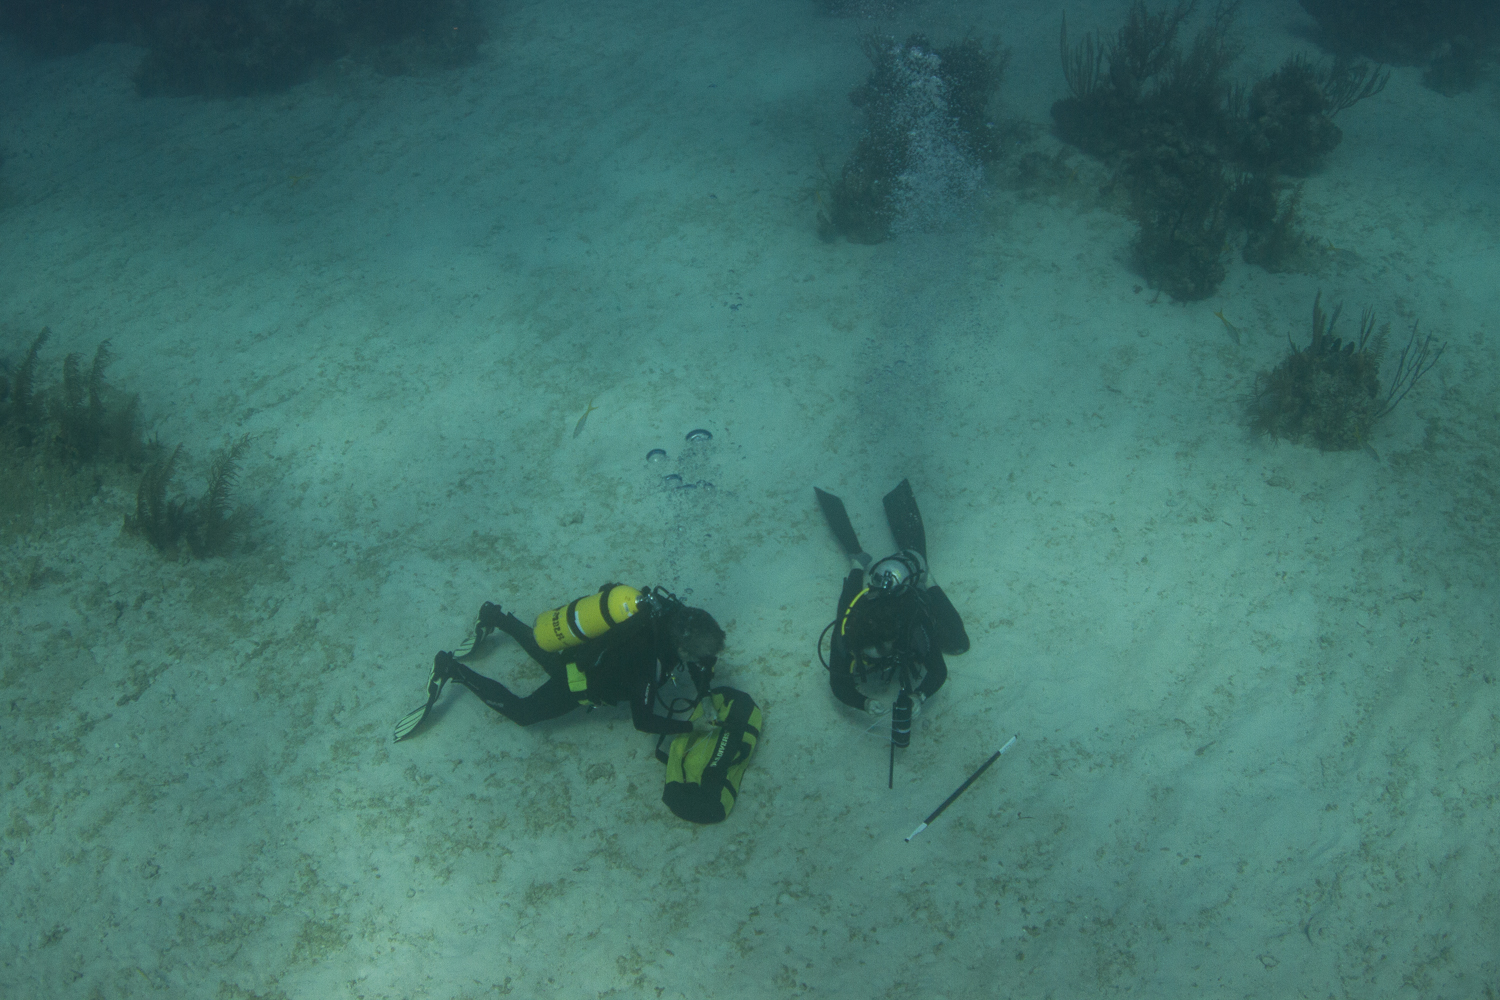 Receivers are deployed in a variety of habitats from sandy bottoms, to coral reefs, to mangrove fringes, to deep water.